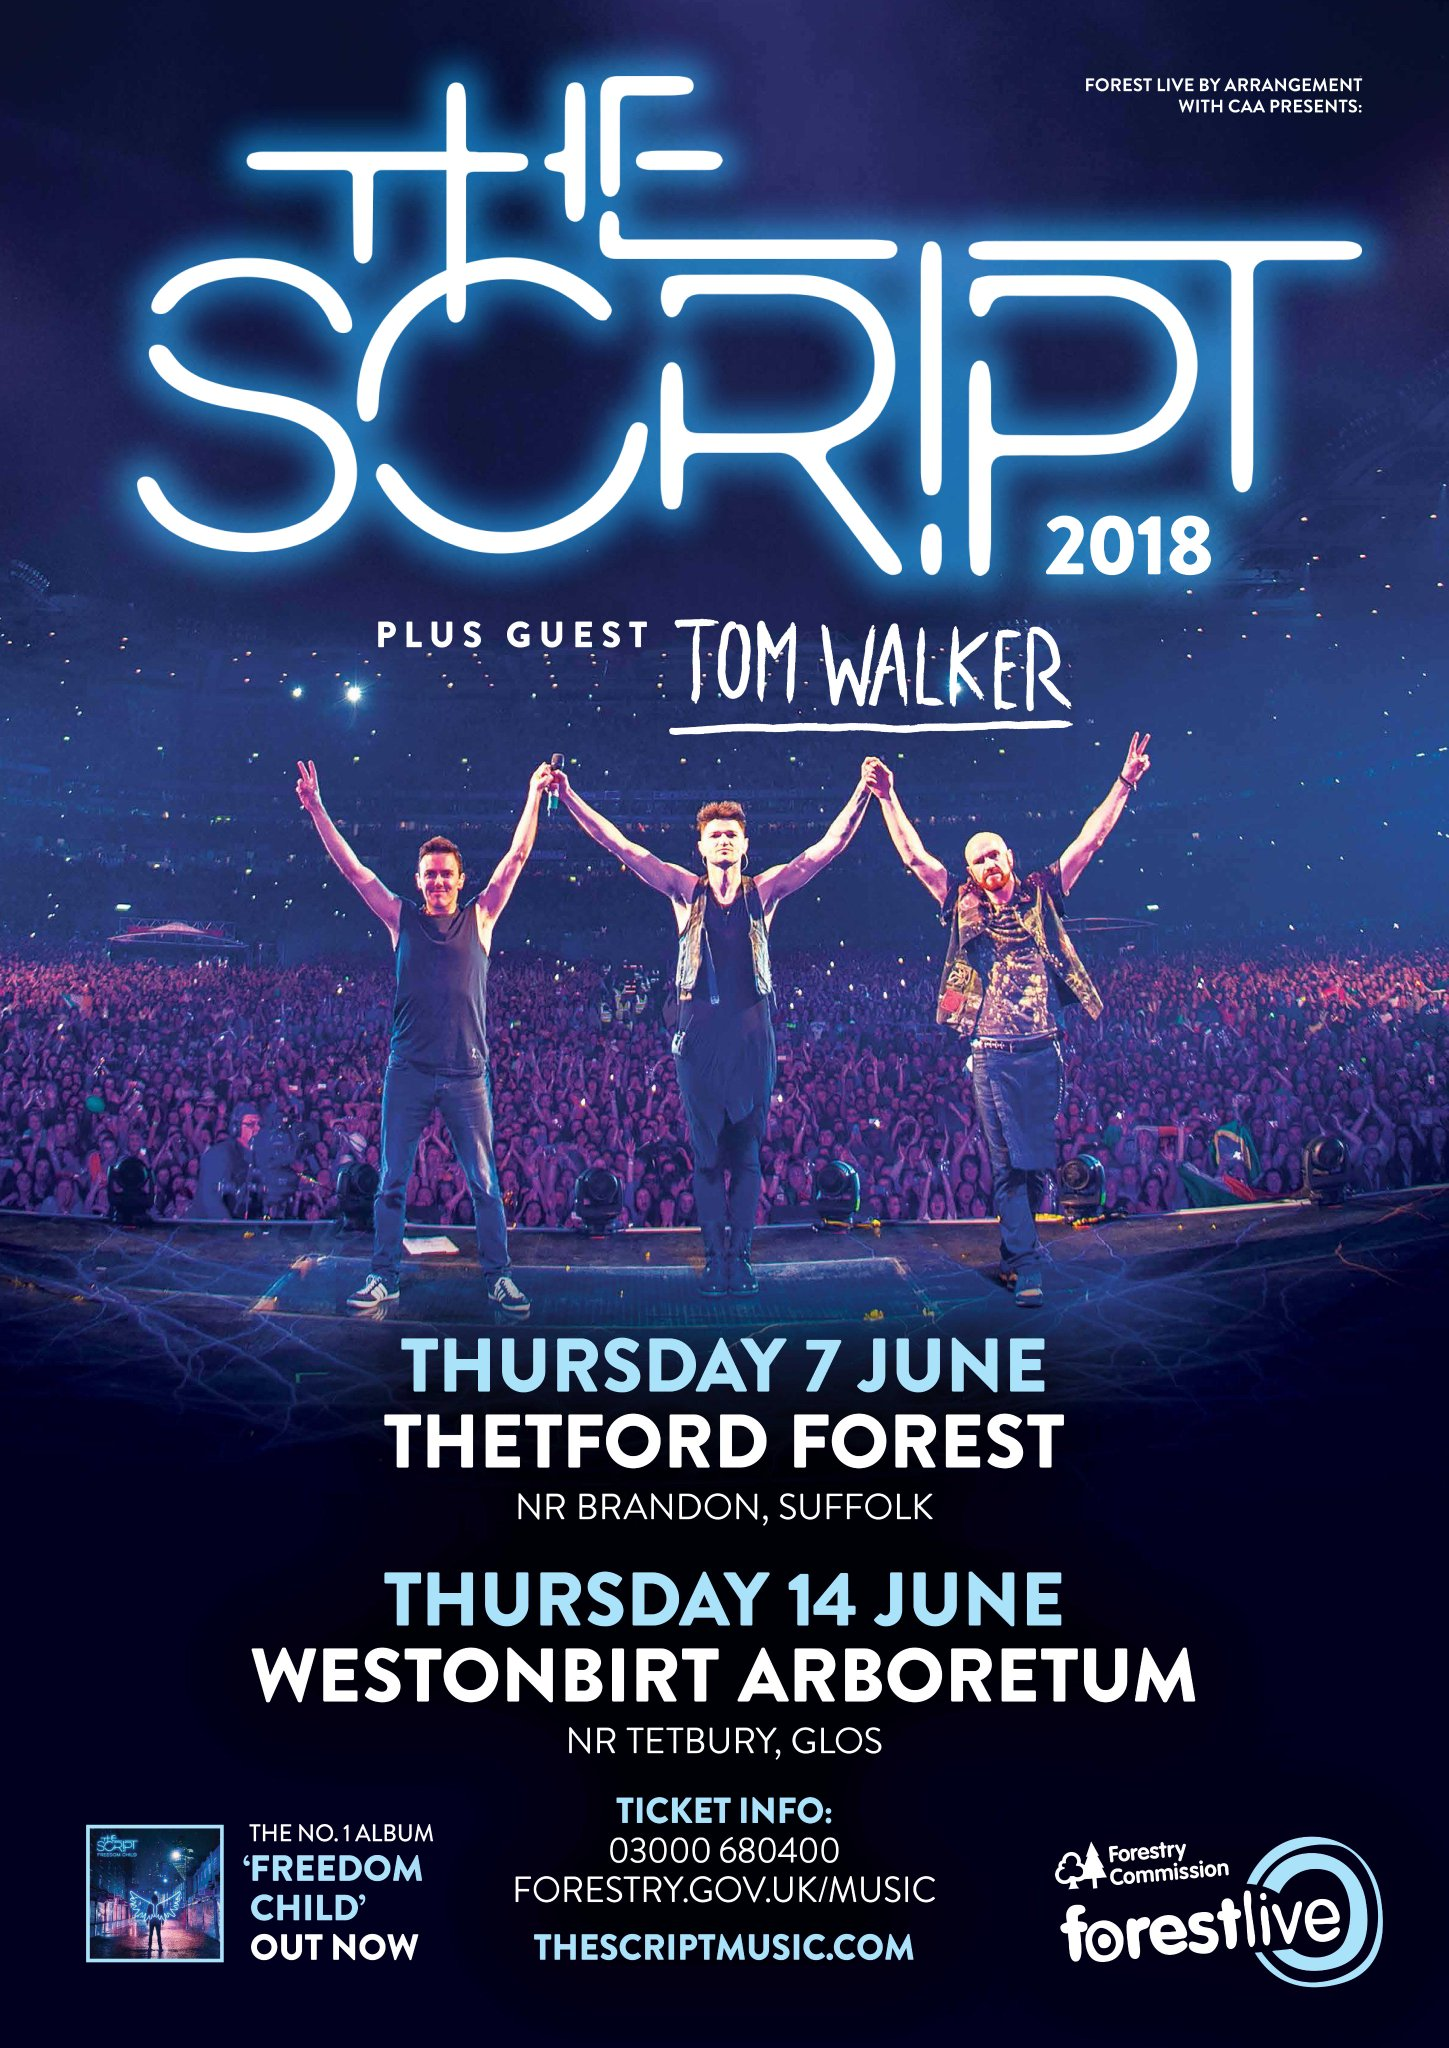 UK! We'll be bringing our good friend @IamTomWalker to support us at our Forest Live shows in June! https://t.co/GIYx0jtqQw